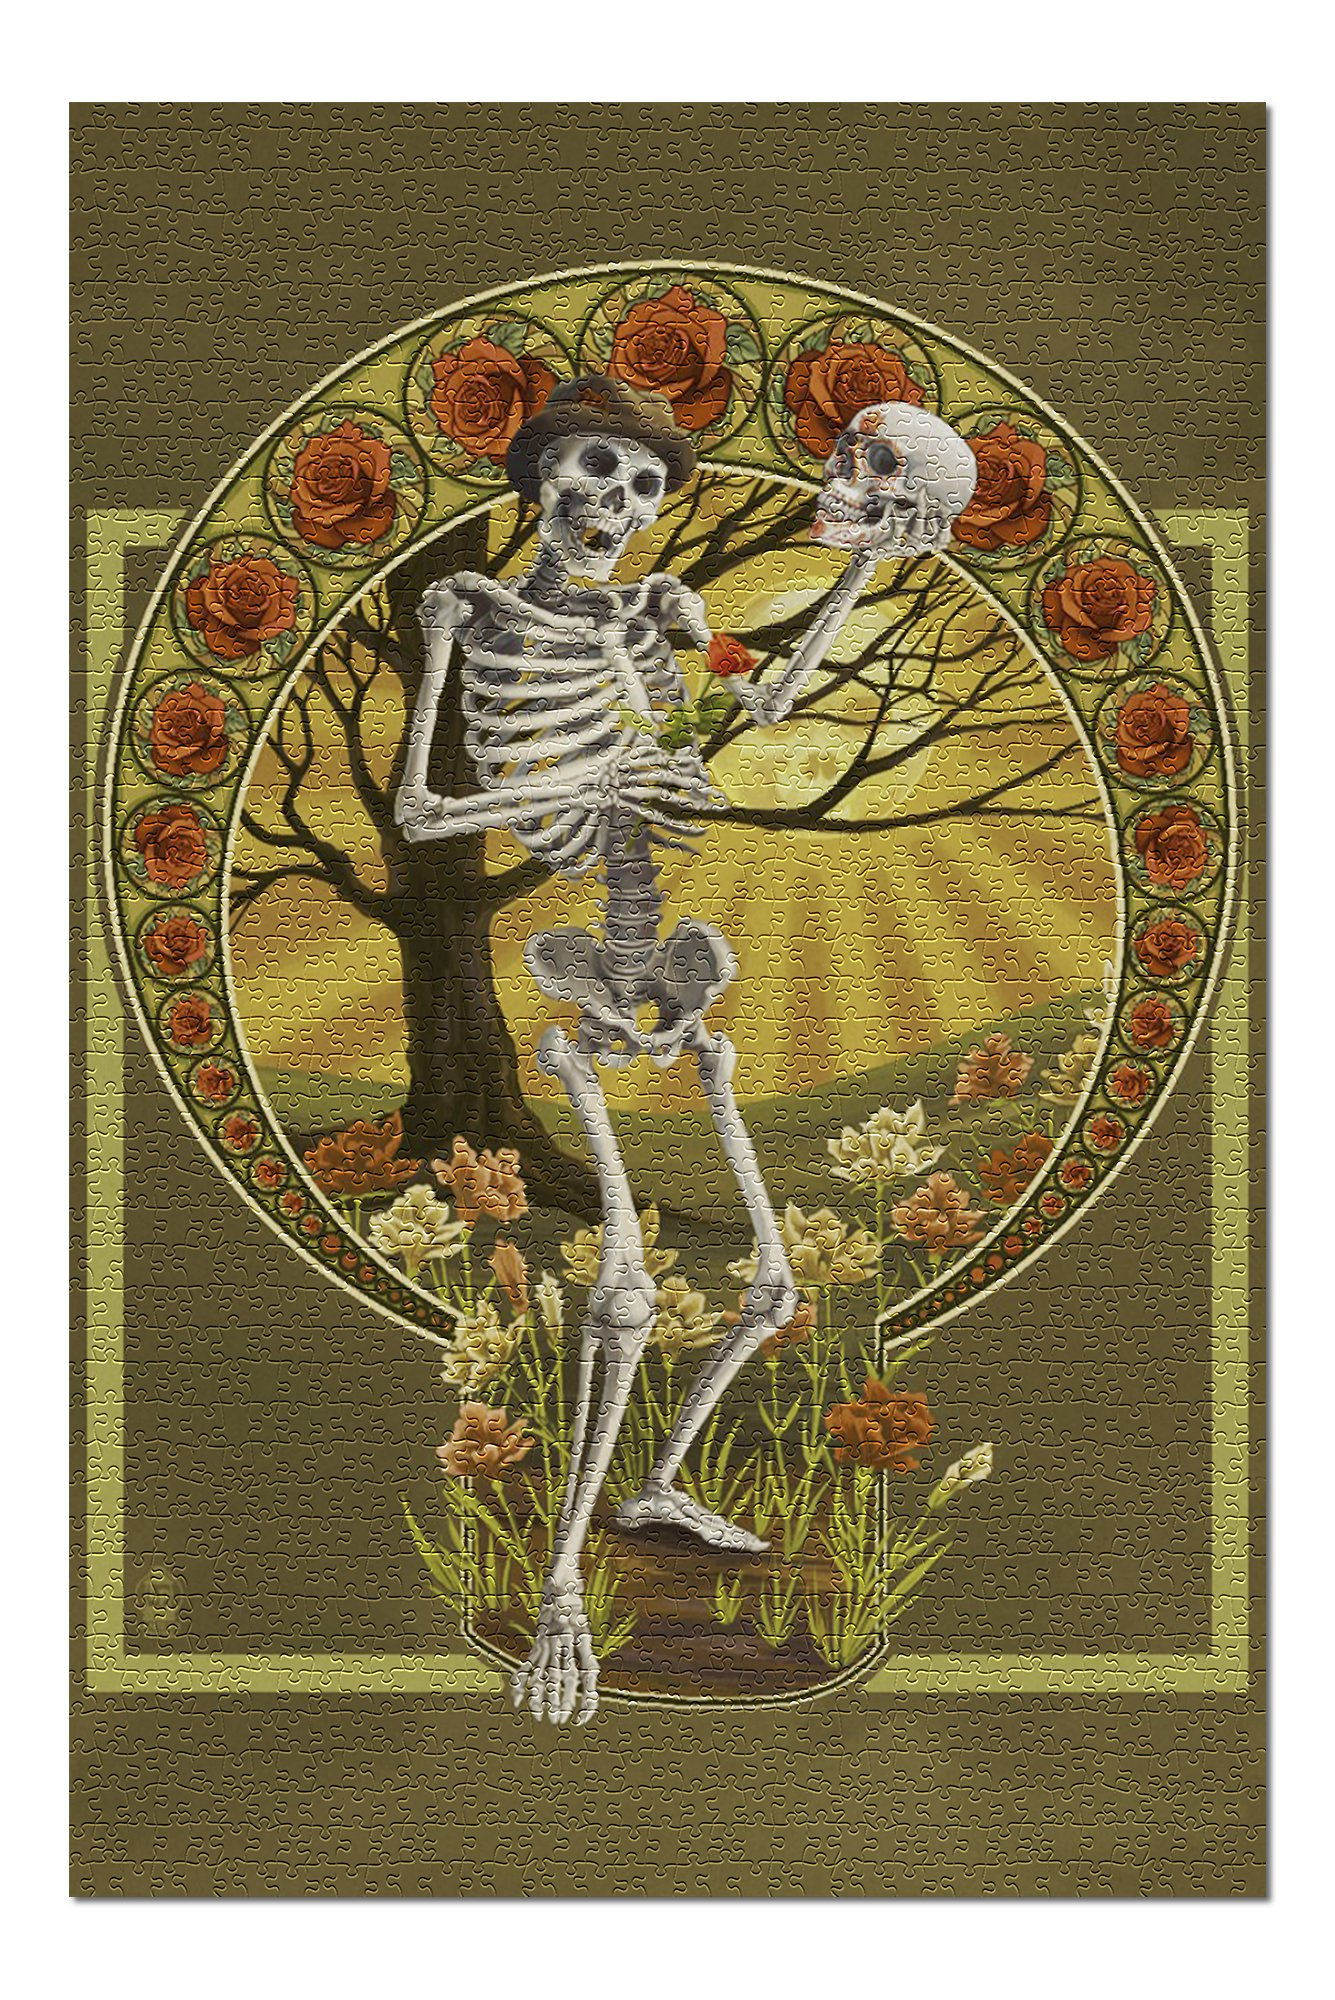 Day of The Dead - Skeleton Holding Sugar Skull (Premium 1000 Piece Jigsaw Puzzle for Adults, 20x30, Made in USA!)